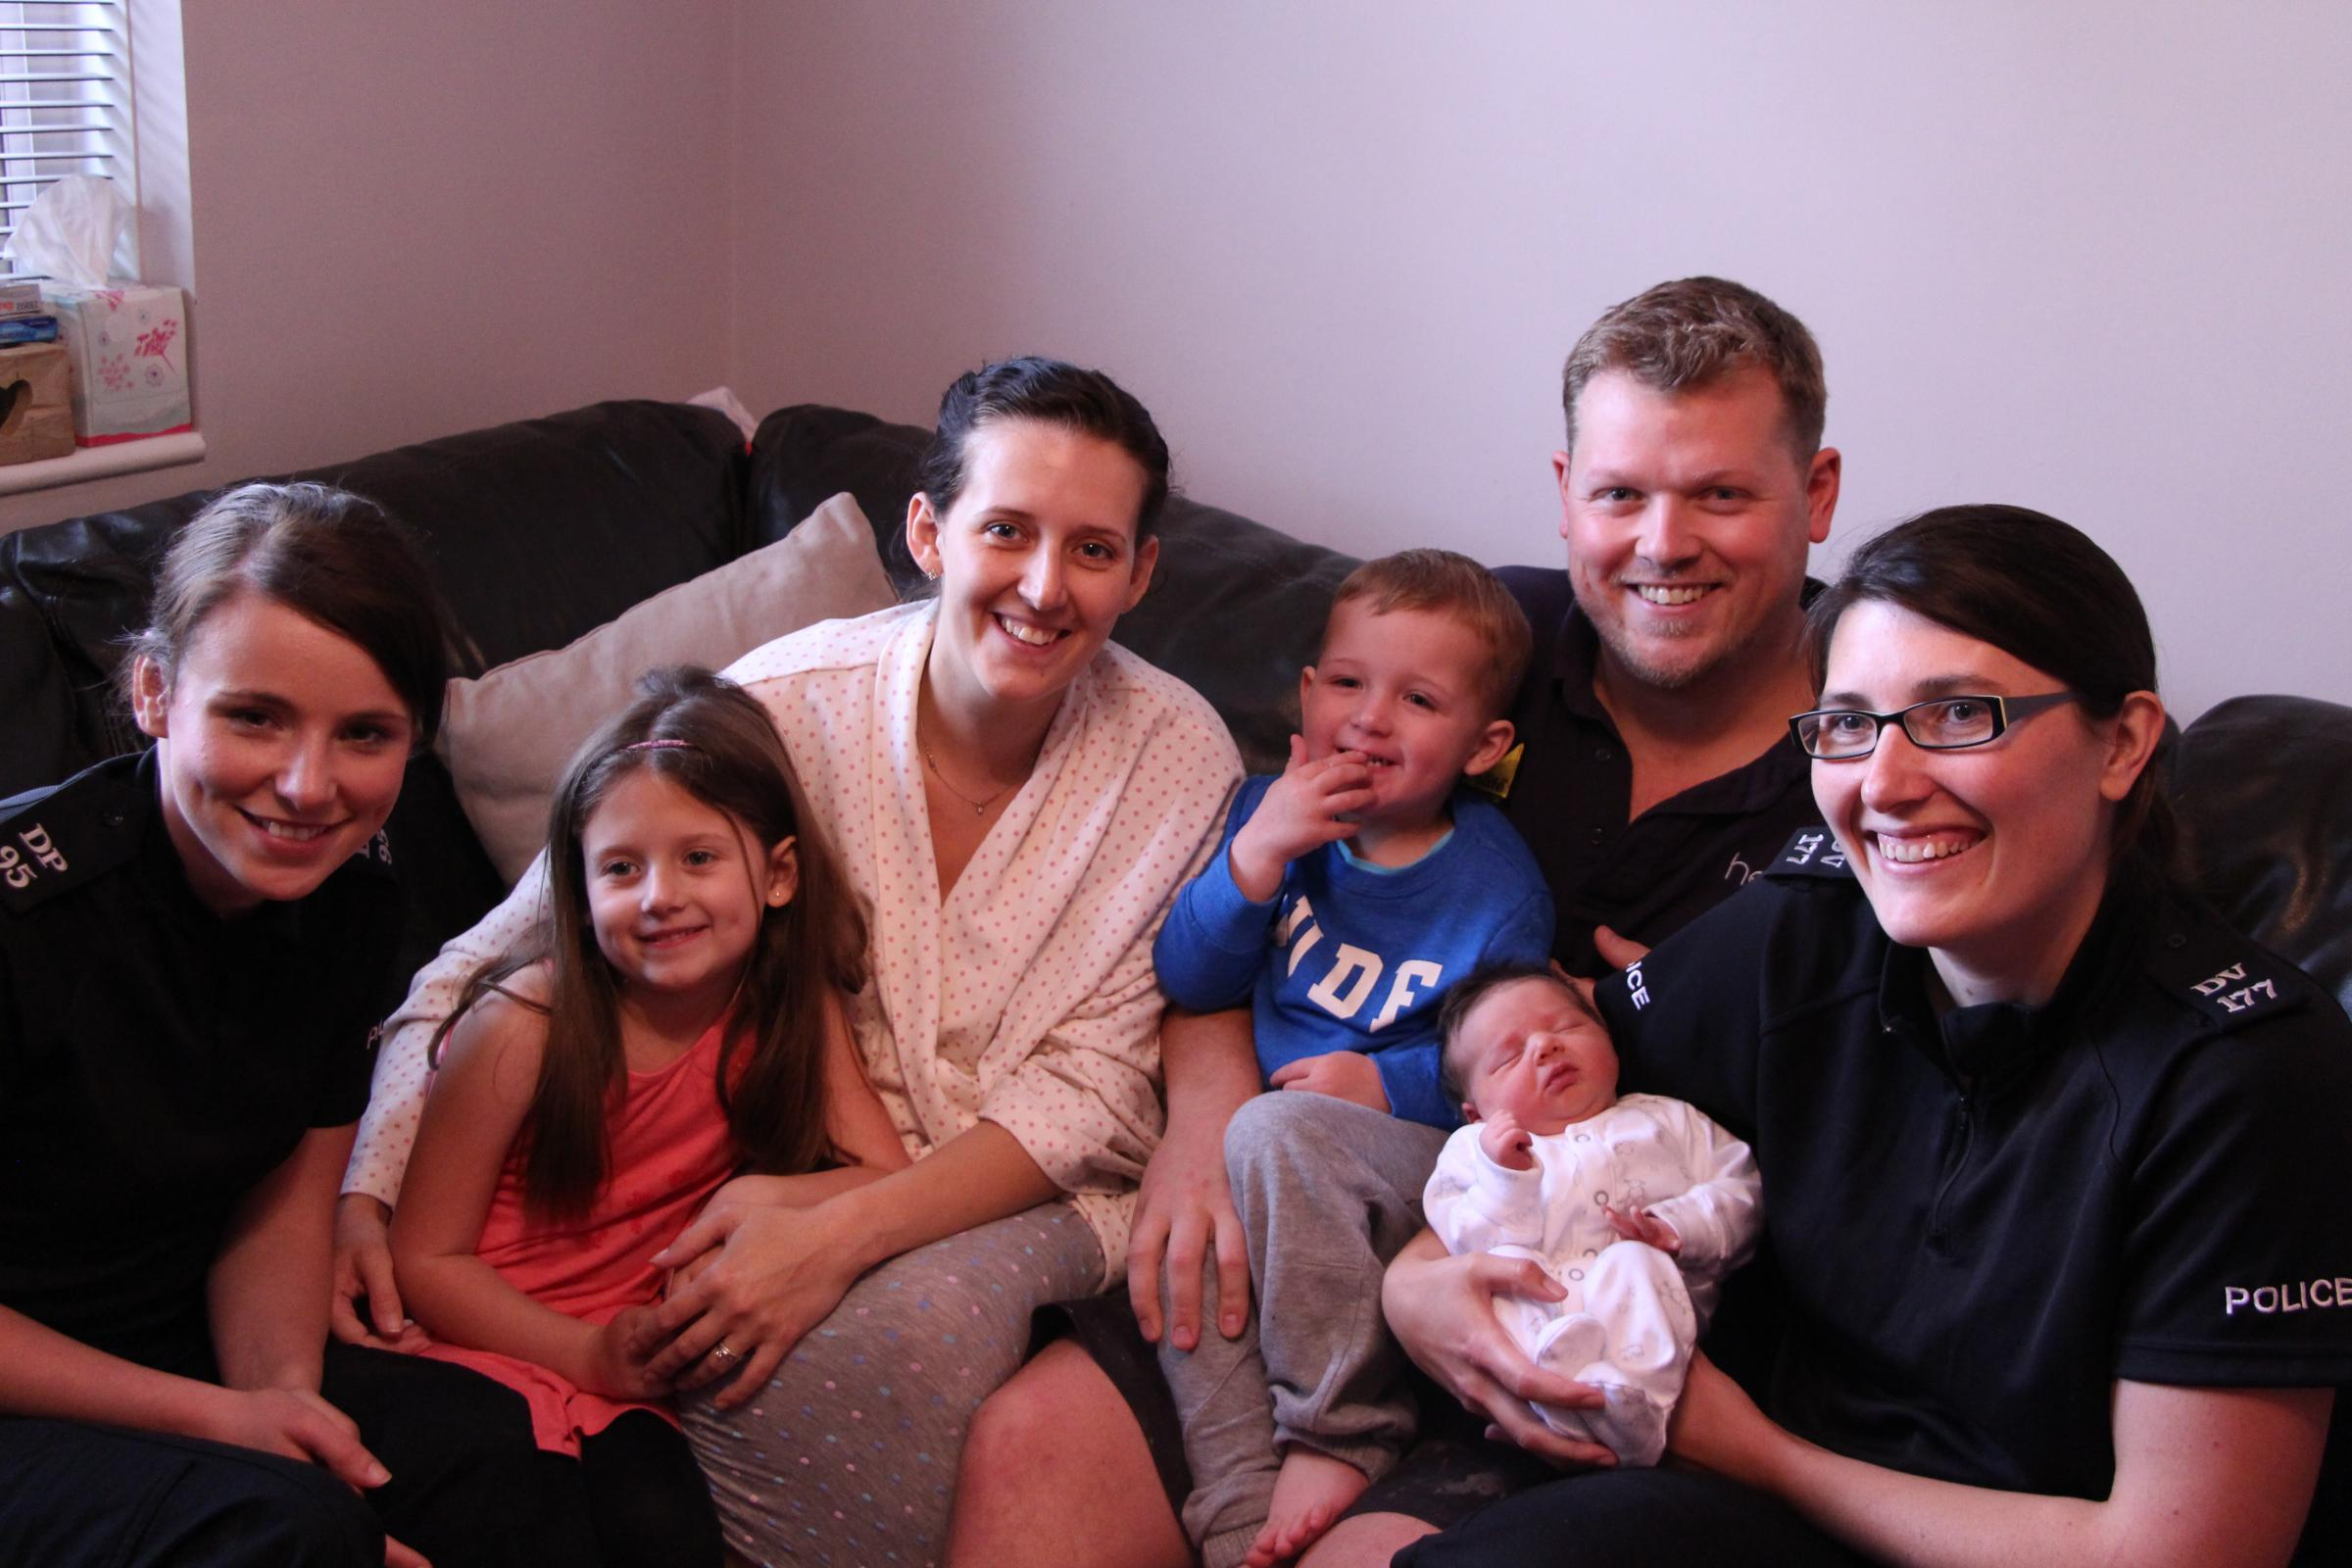 Officers Roisin Vafaee and Jenny Pietersen with the Marcantonio family including newborn baby Thea.